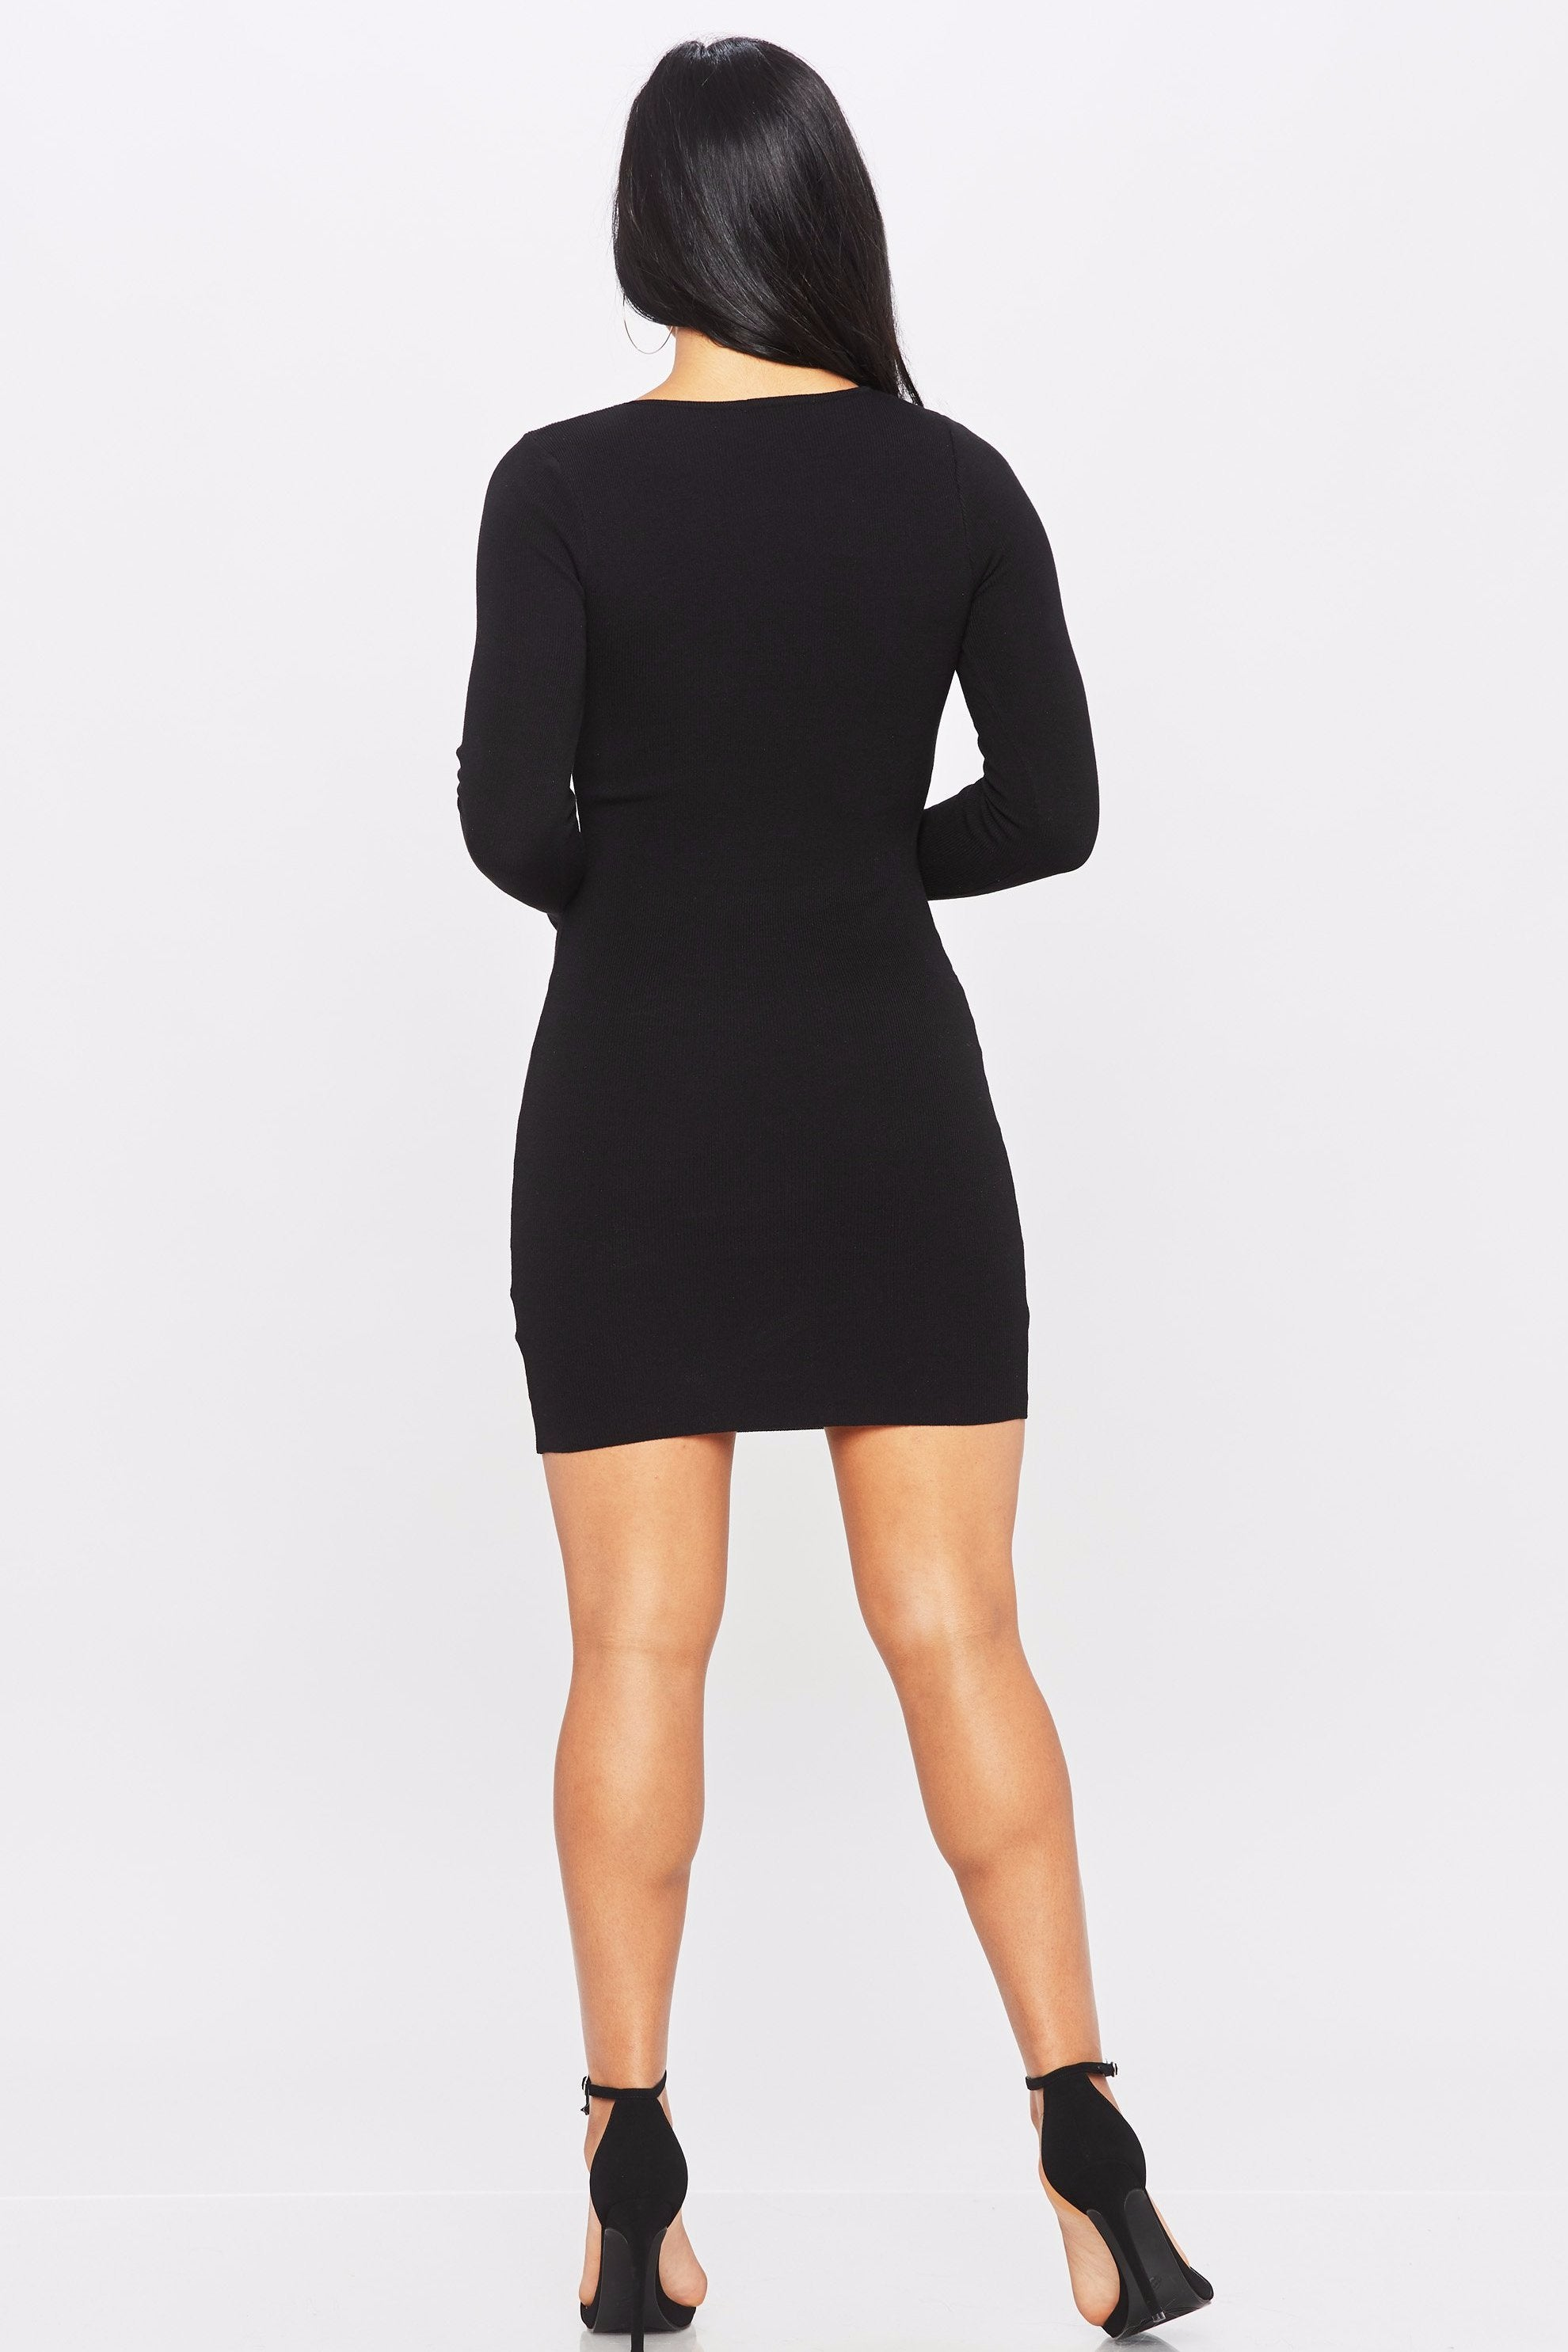 Roxeanne Dress - HoneyBum